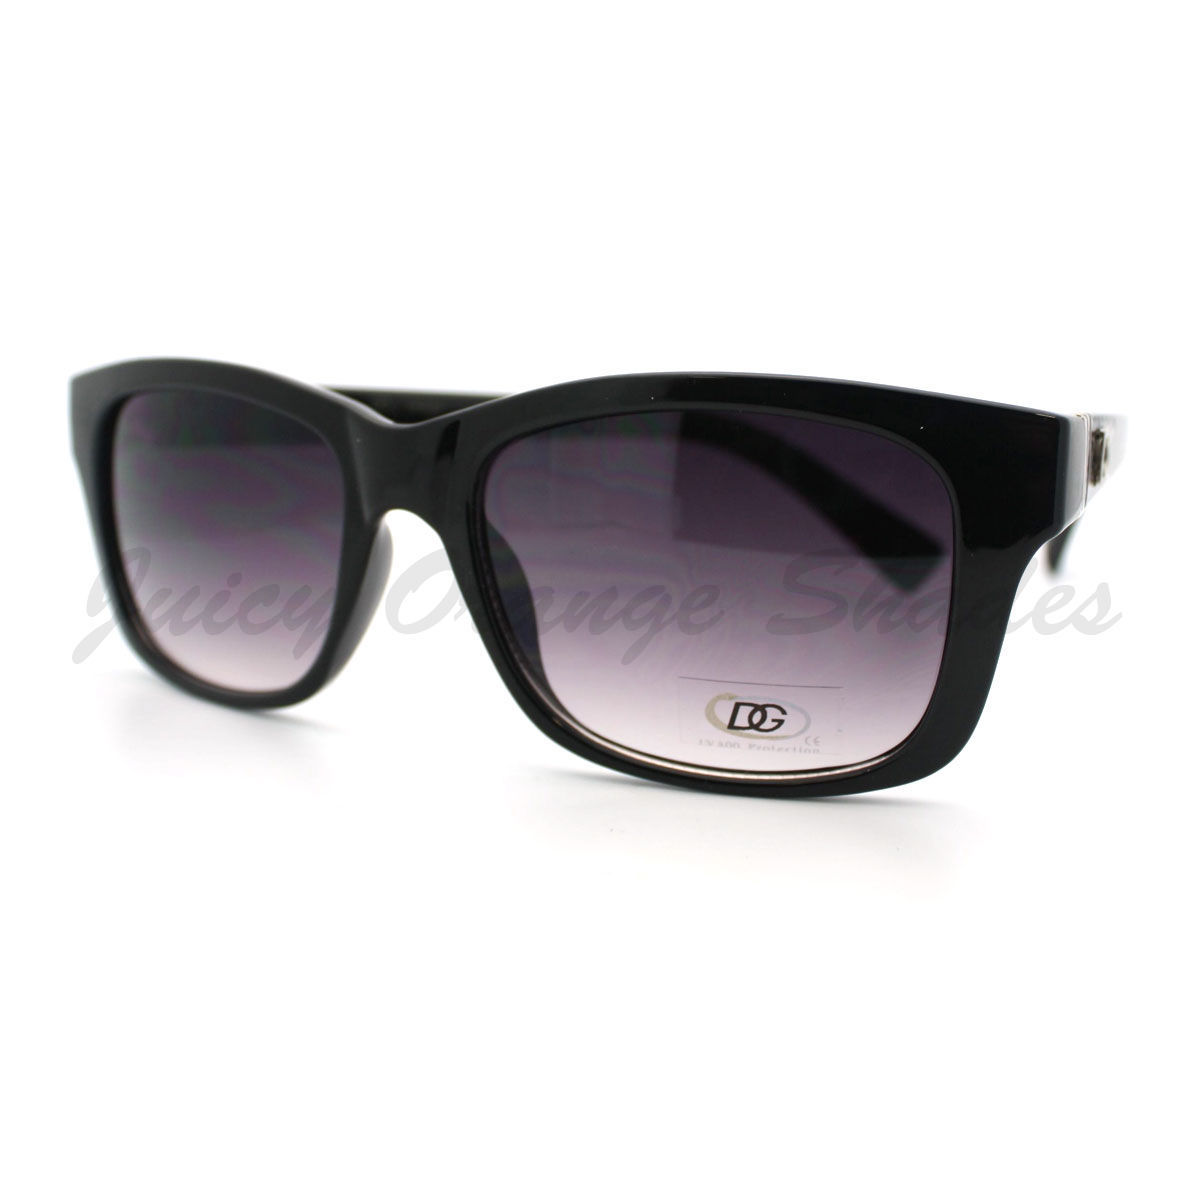 Fashion Sunglasses Womens Short Horn Rimmed Rectangular Shades